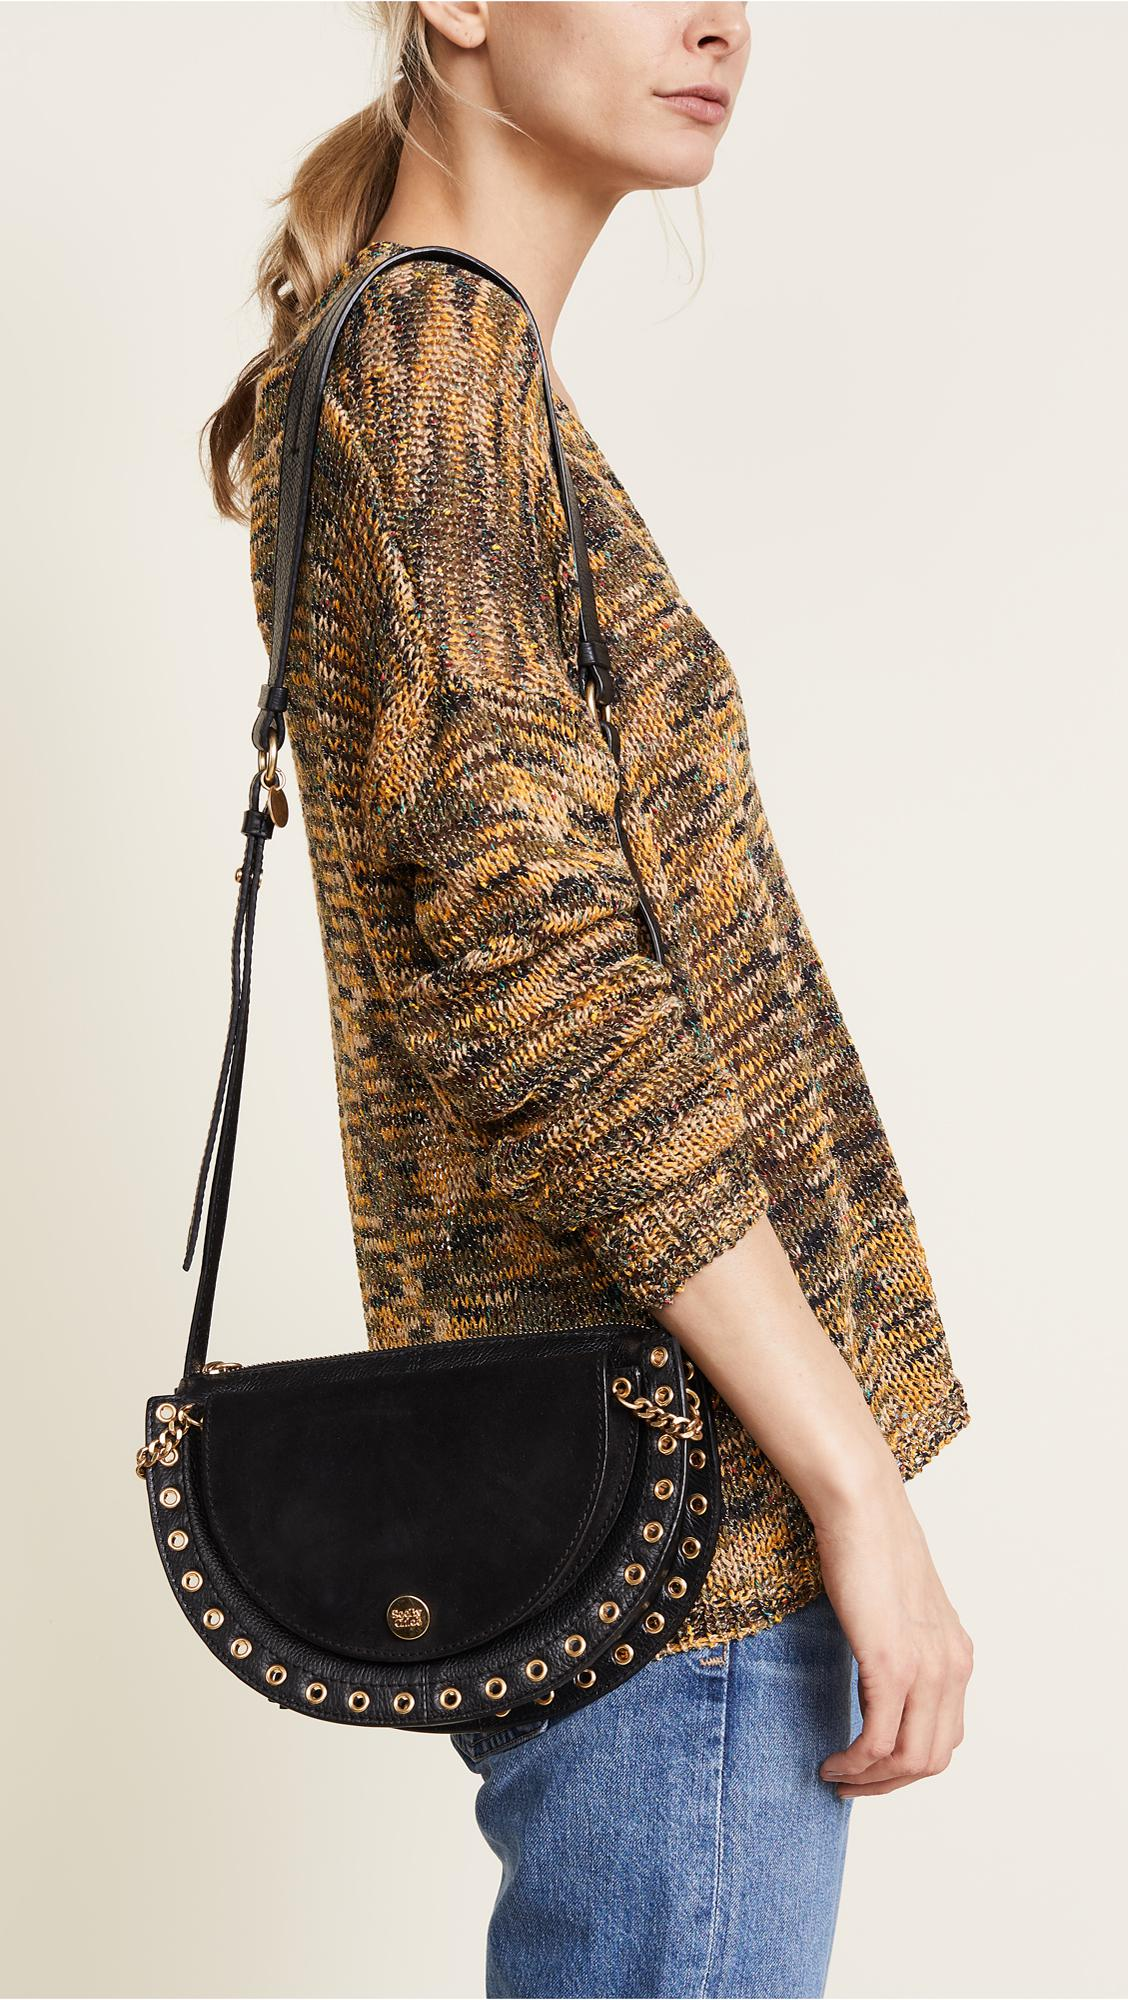 b76541d3e3 See By Chloé Leather Kriss Medium Shoulder Bag in Black - Lyst